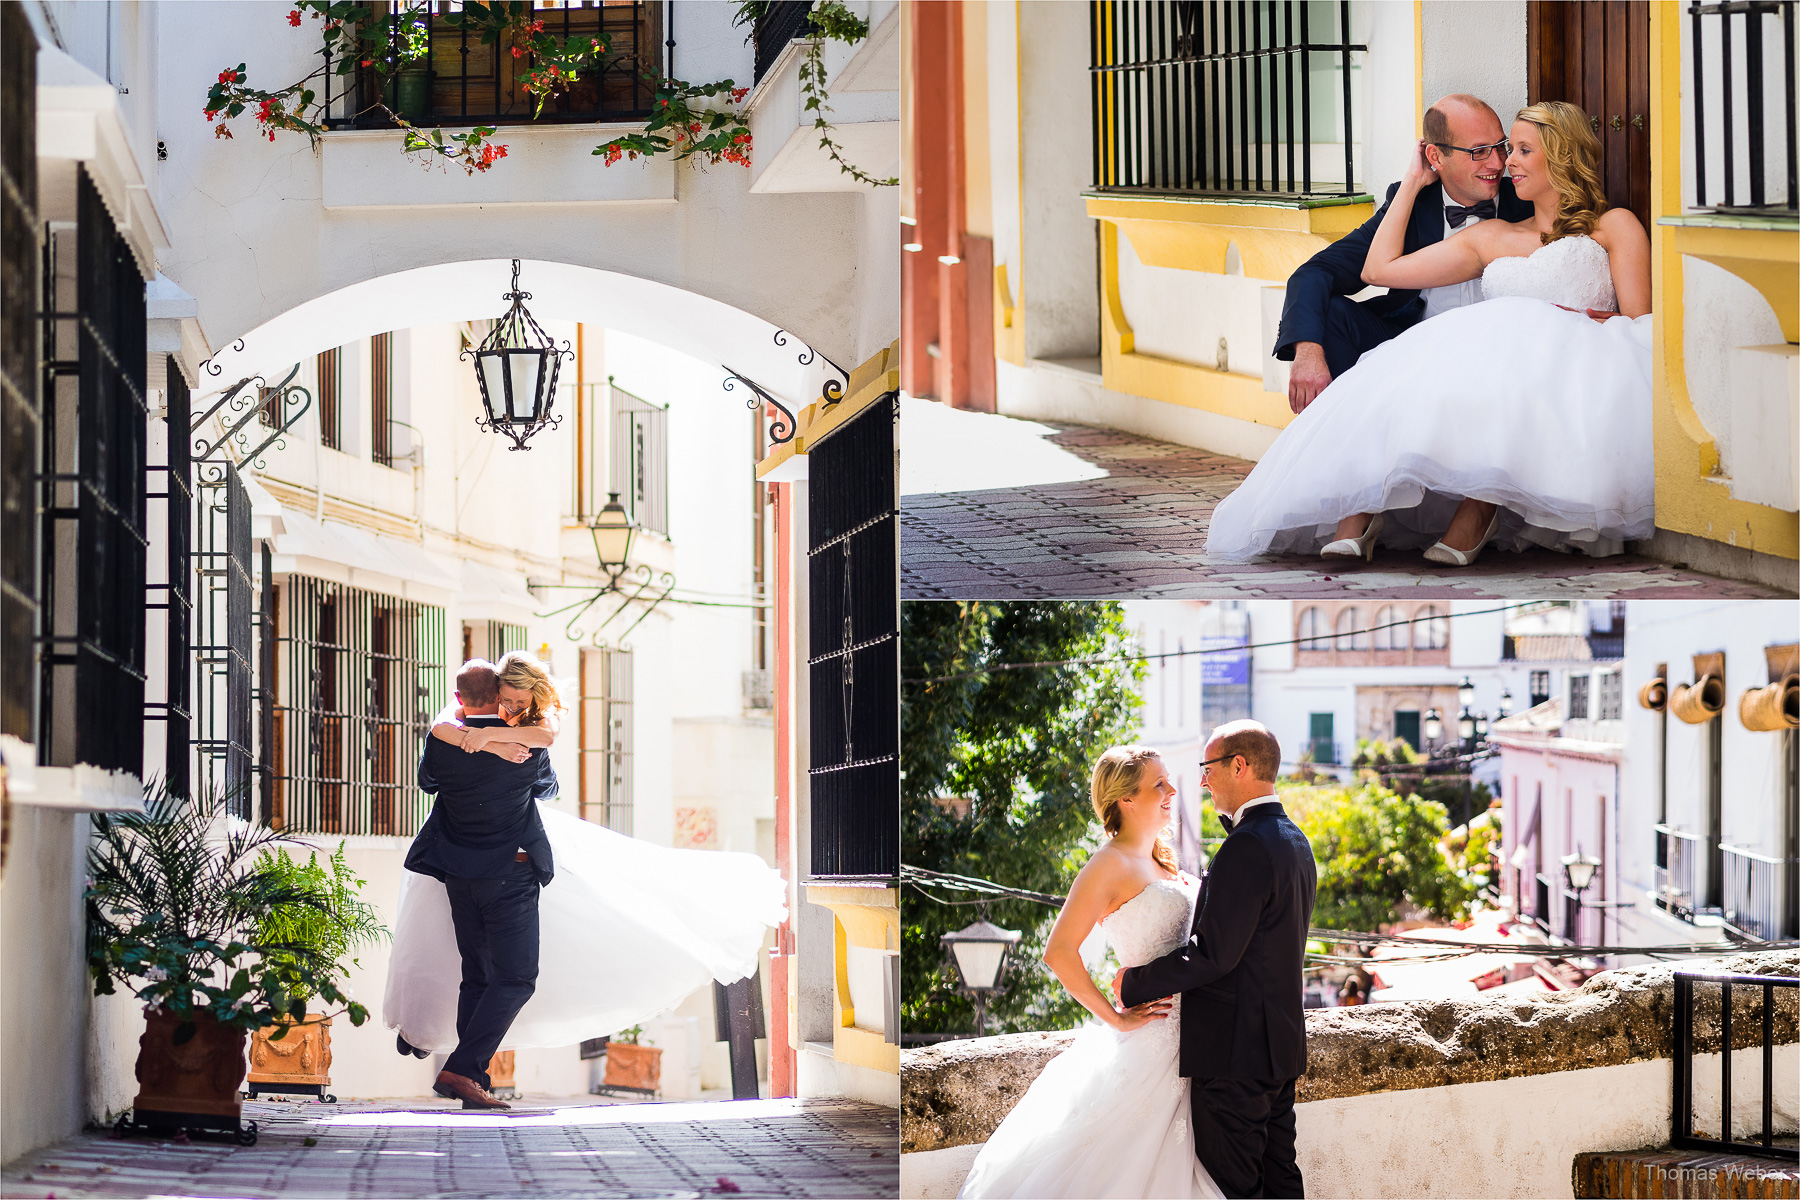 After Wedding Shooting in Marbella (Spanien), Hochzeitsfotograf Thomas Weber aus Oldenburg